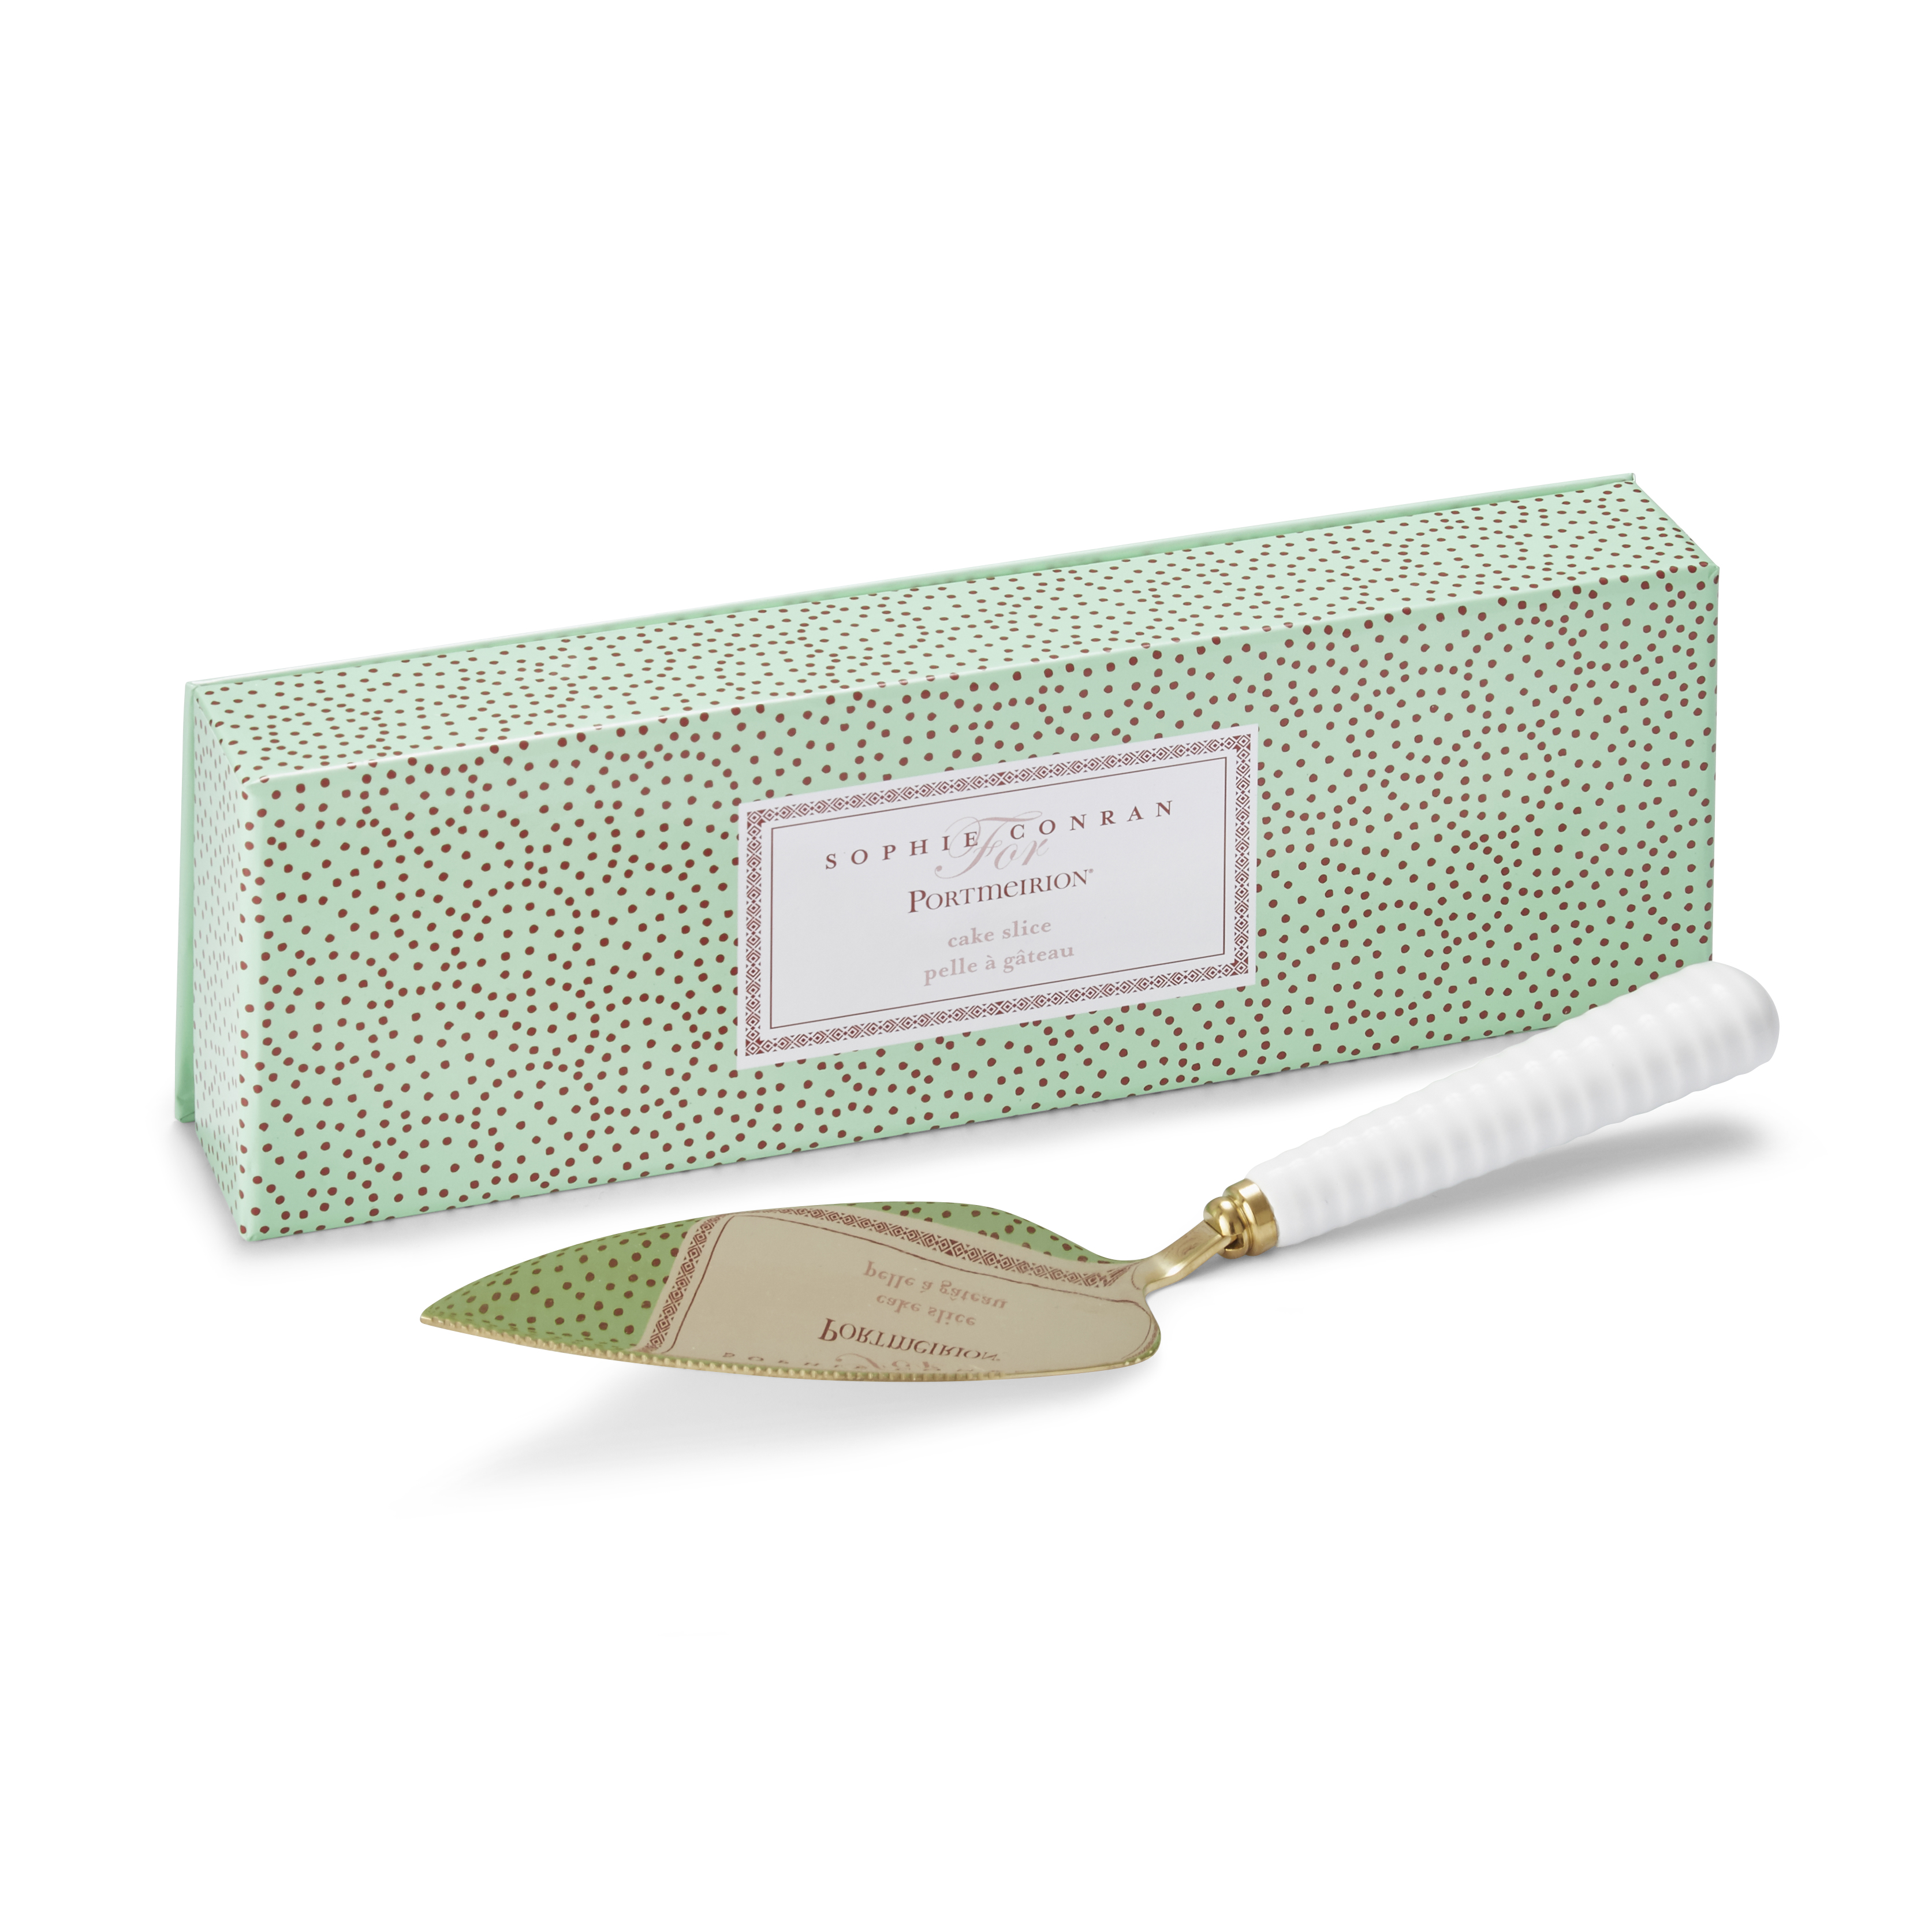 Sophie Conran for Portmeirion Cake Slice image number 3